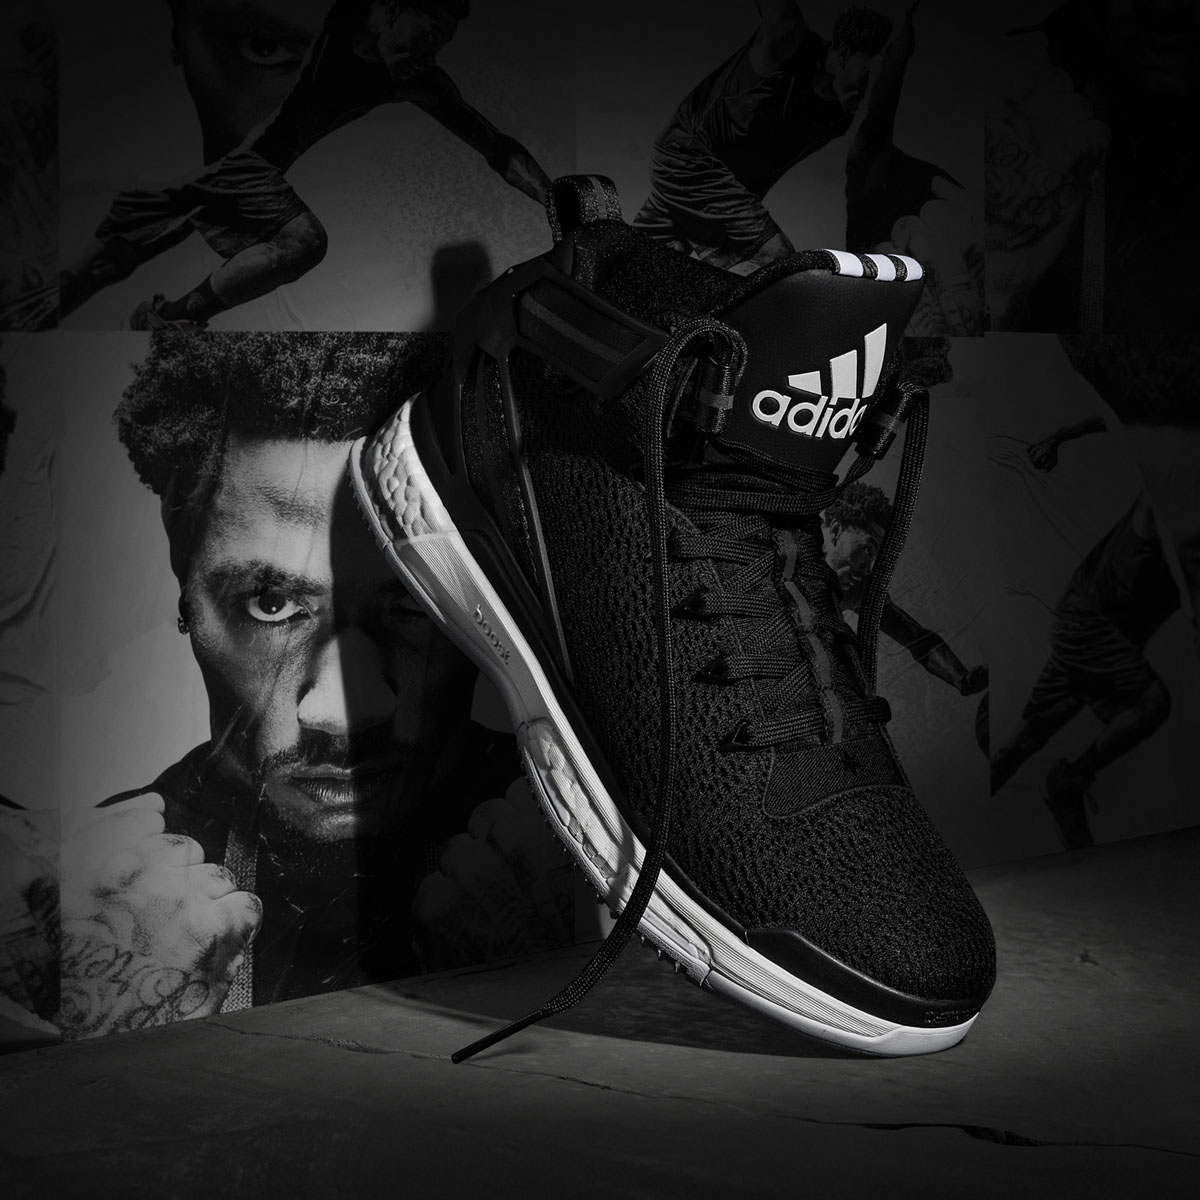 Derrick Rose Has New adidas Sneakers for Home and Away Games  4efdd1e8a5